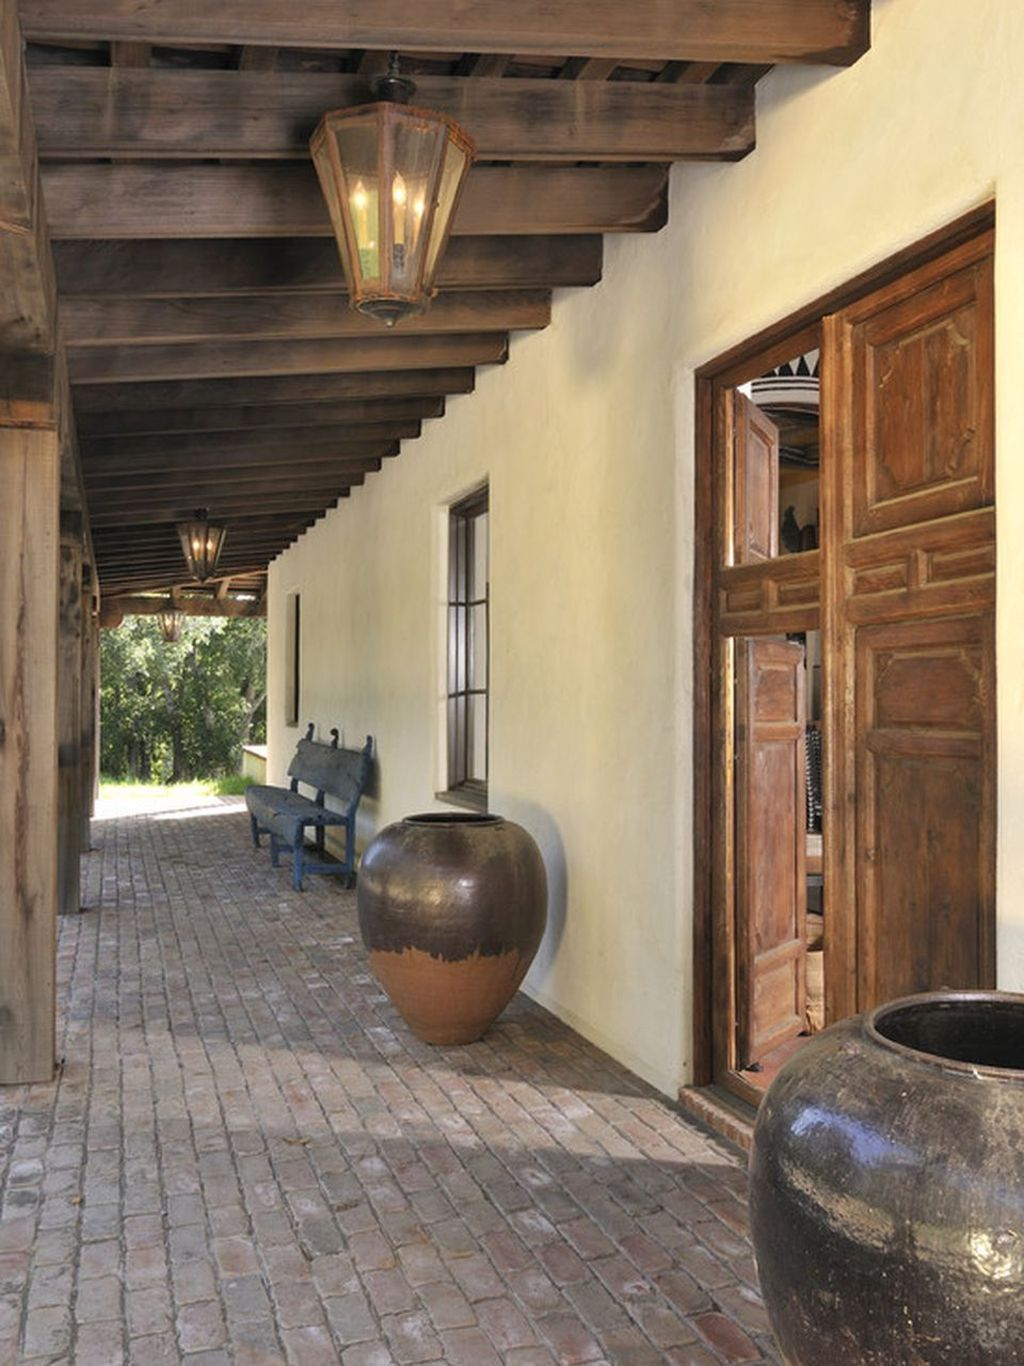 Balkongestaltung Mediterran 51 Beautiful Rustic Mediterranean Farmhouse Exterior Design Ideas